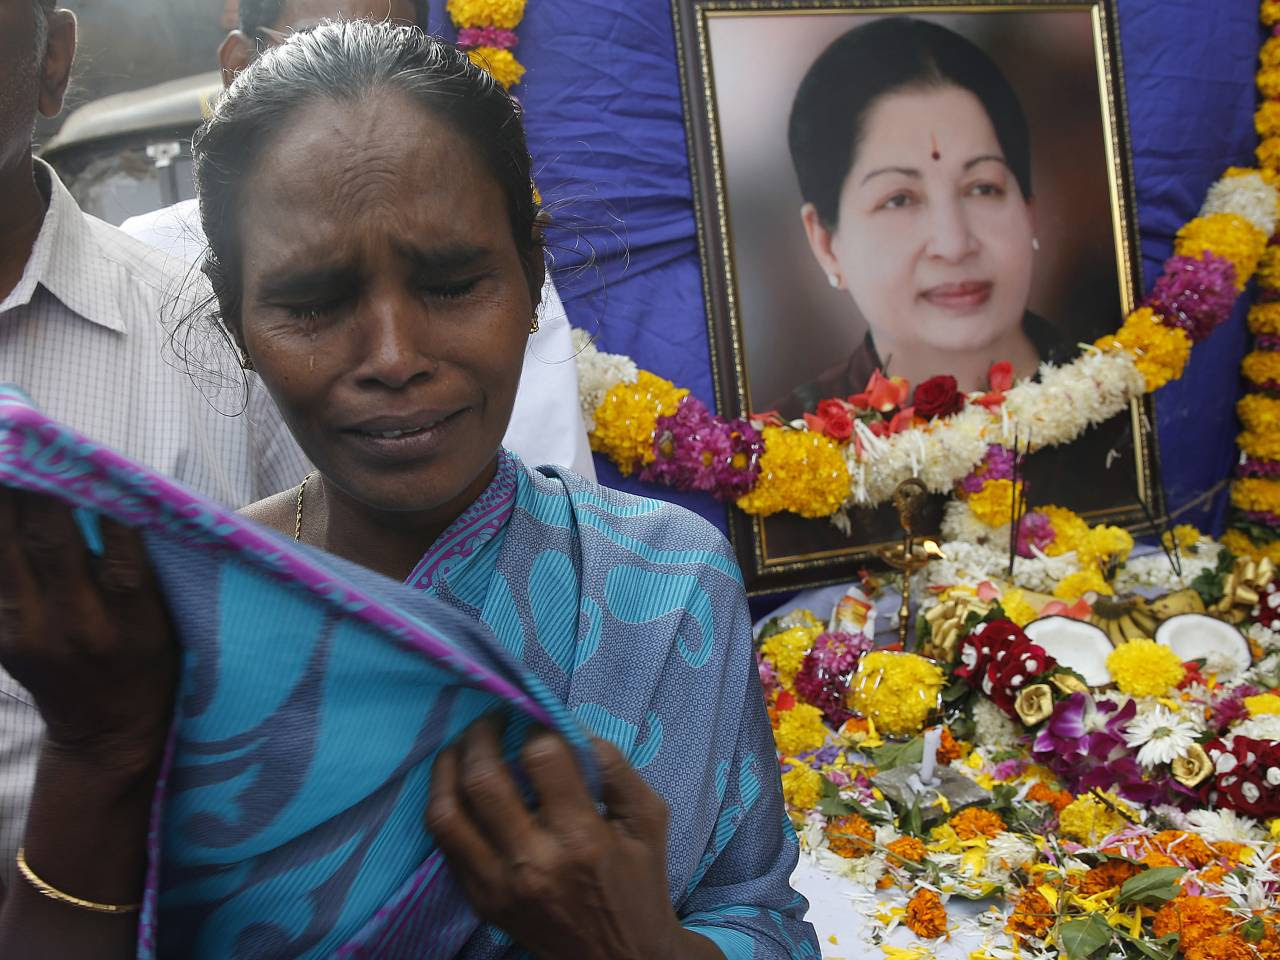 A supporter of India's Tamil Nadu state's former Chief Minister, Jayaram Jayalalithaa, mourns as she pays her tributes after her death outside their party office in Mumbai, India, Tuesday, Dec. 6, 2016. Jayalalithaa, the hugely popular south Indian actress who later turned to politics and became the highest elected official in the state of Tamil Nadu, died Monday. She was 68.